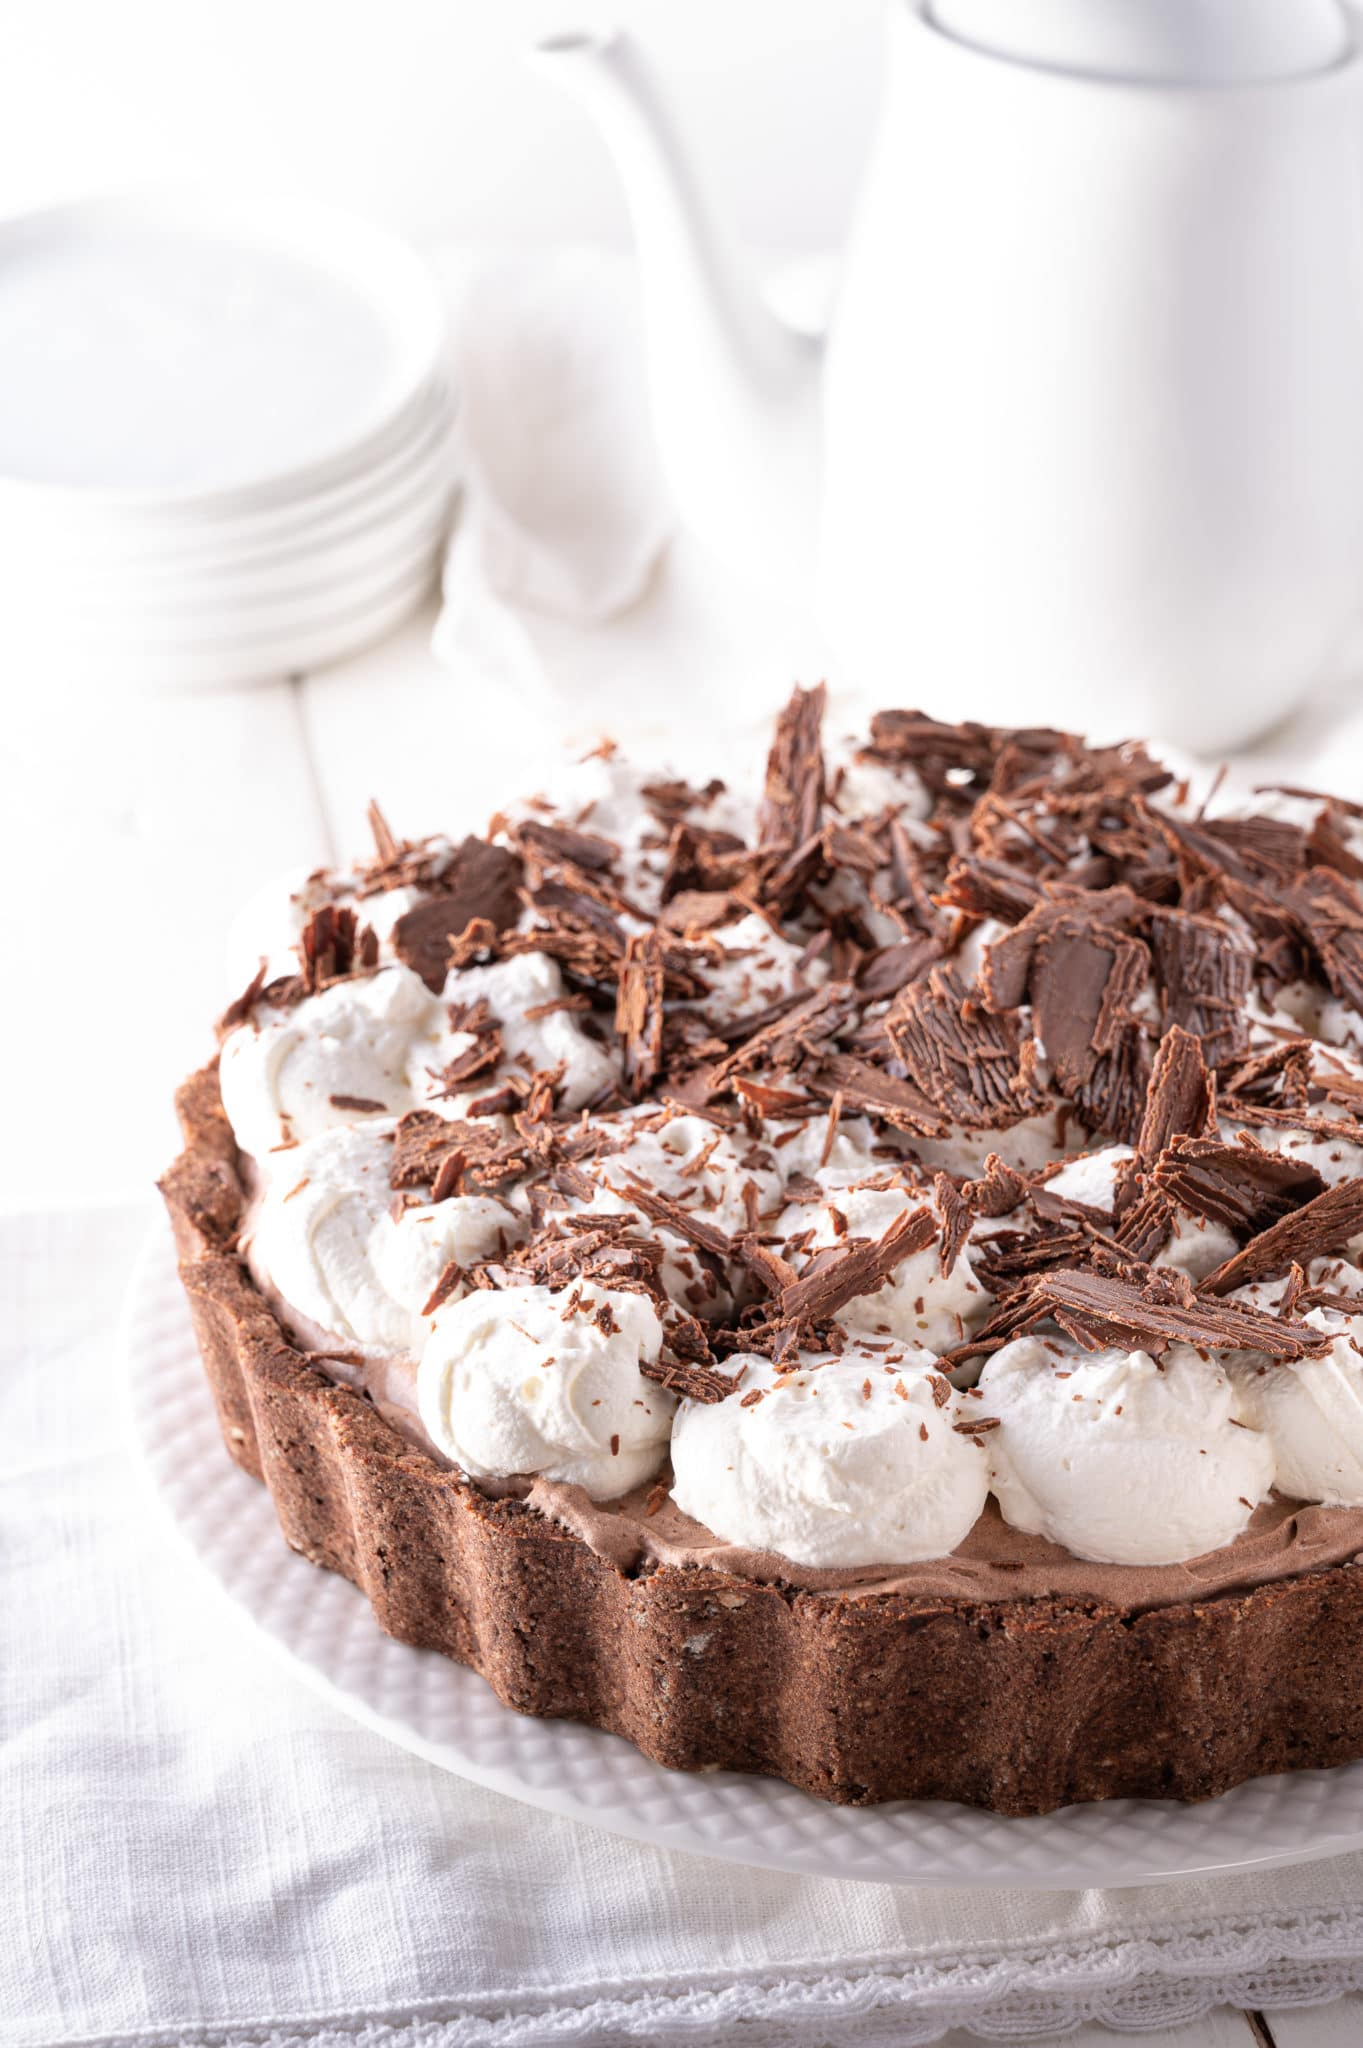 A low carb chocolate silk pie topped with whipped cream and chocolate shavings on a bright white tabletop.